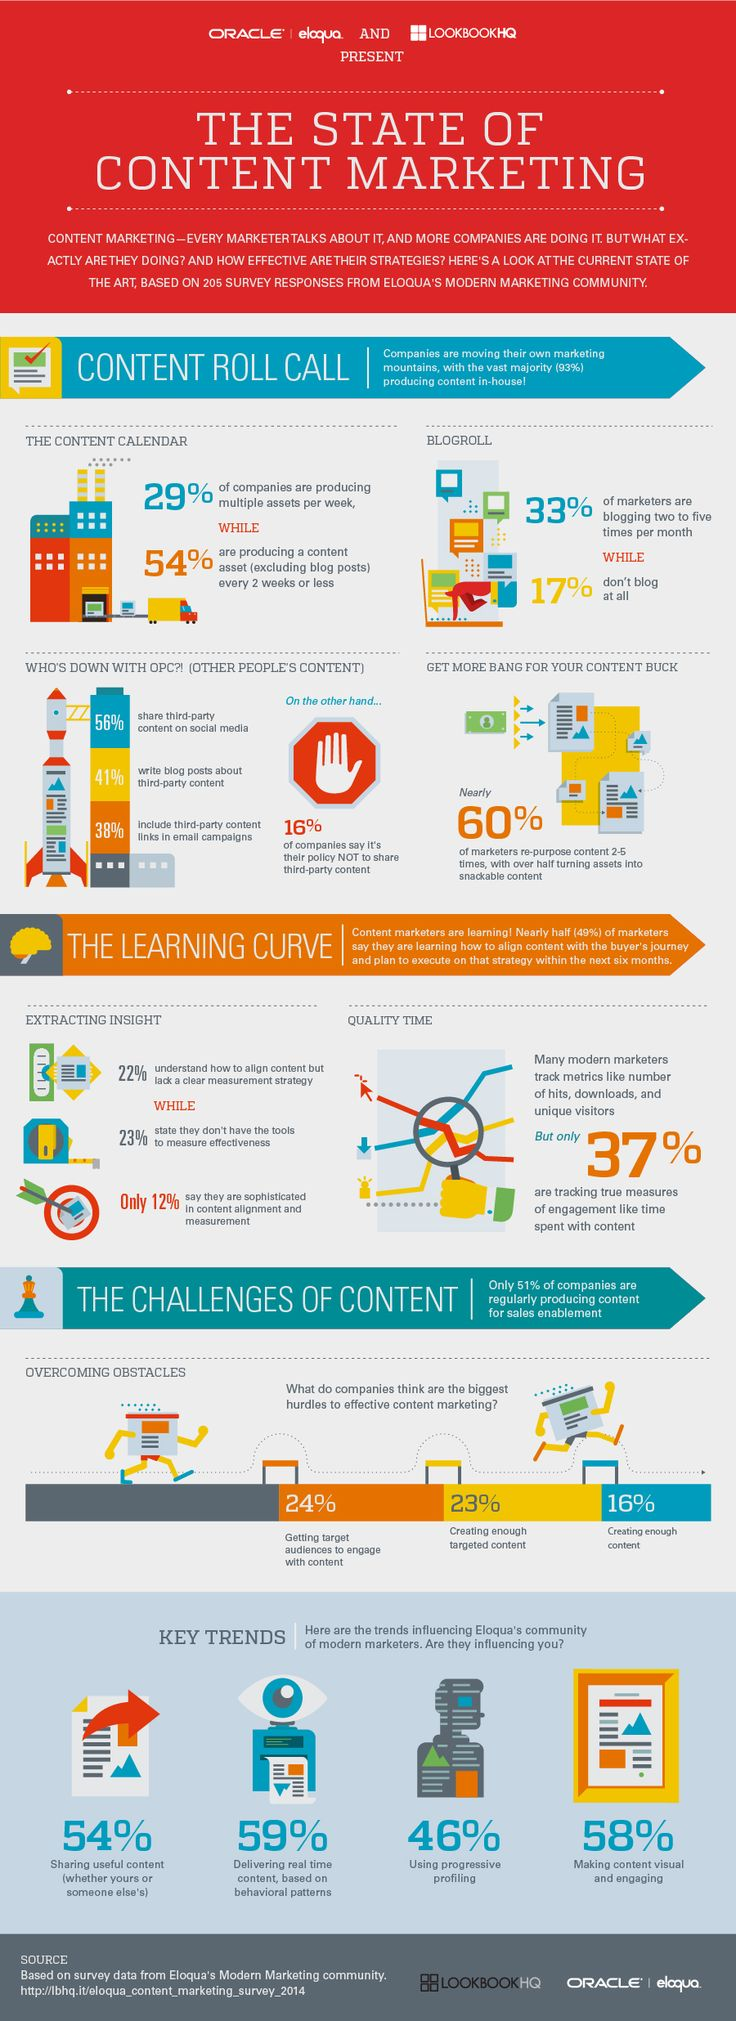 Inbound Marketing in 2014 - Oracle/Eloqua - Relevanza